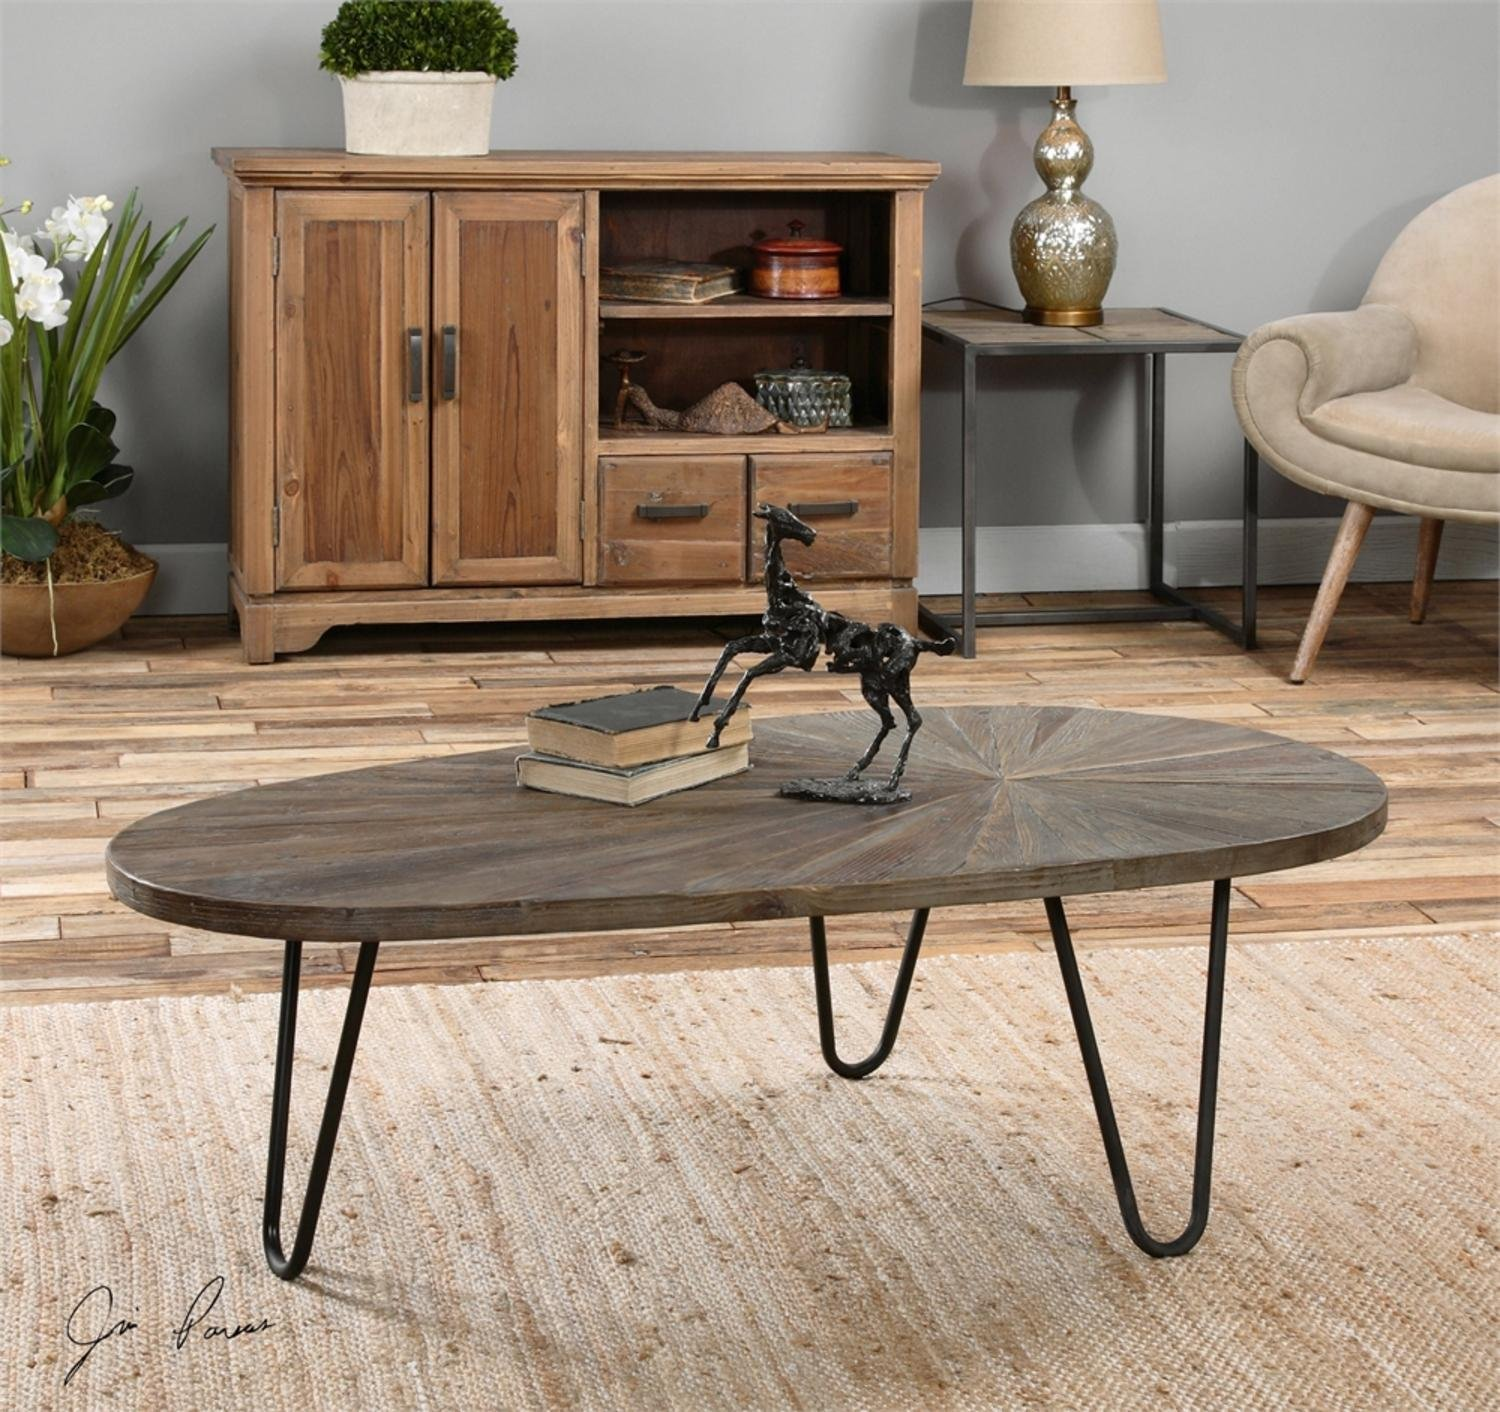 Cheap Forged Iron Table Legs, Find Forged Iron Table Legs Deals On ...